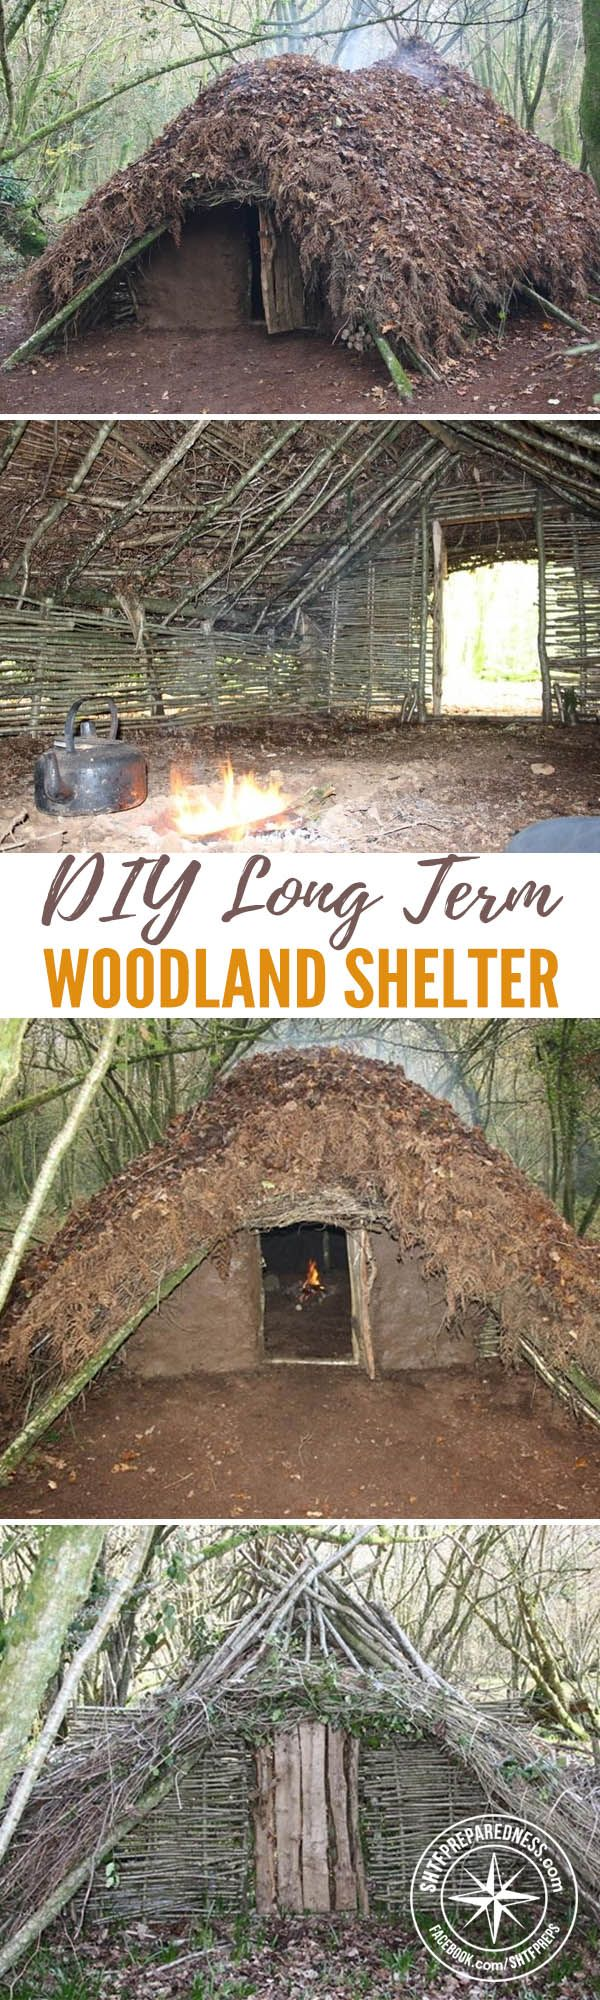 DIY Long Term Woodland Shelter — Have you ever given thought to the unlikely chance of having to bug out and you have no where to go? No other safe house? Well this article has over 20 photos to give you an idea how to make a long term habitat with from the woodland.